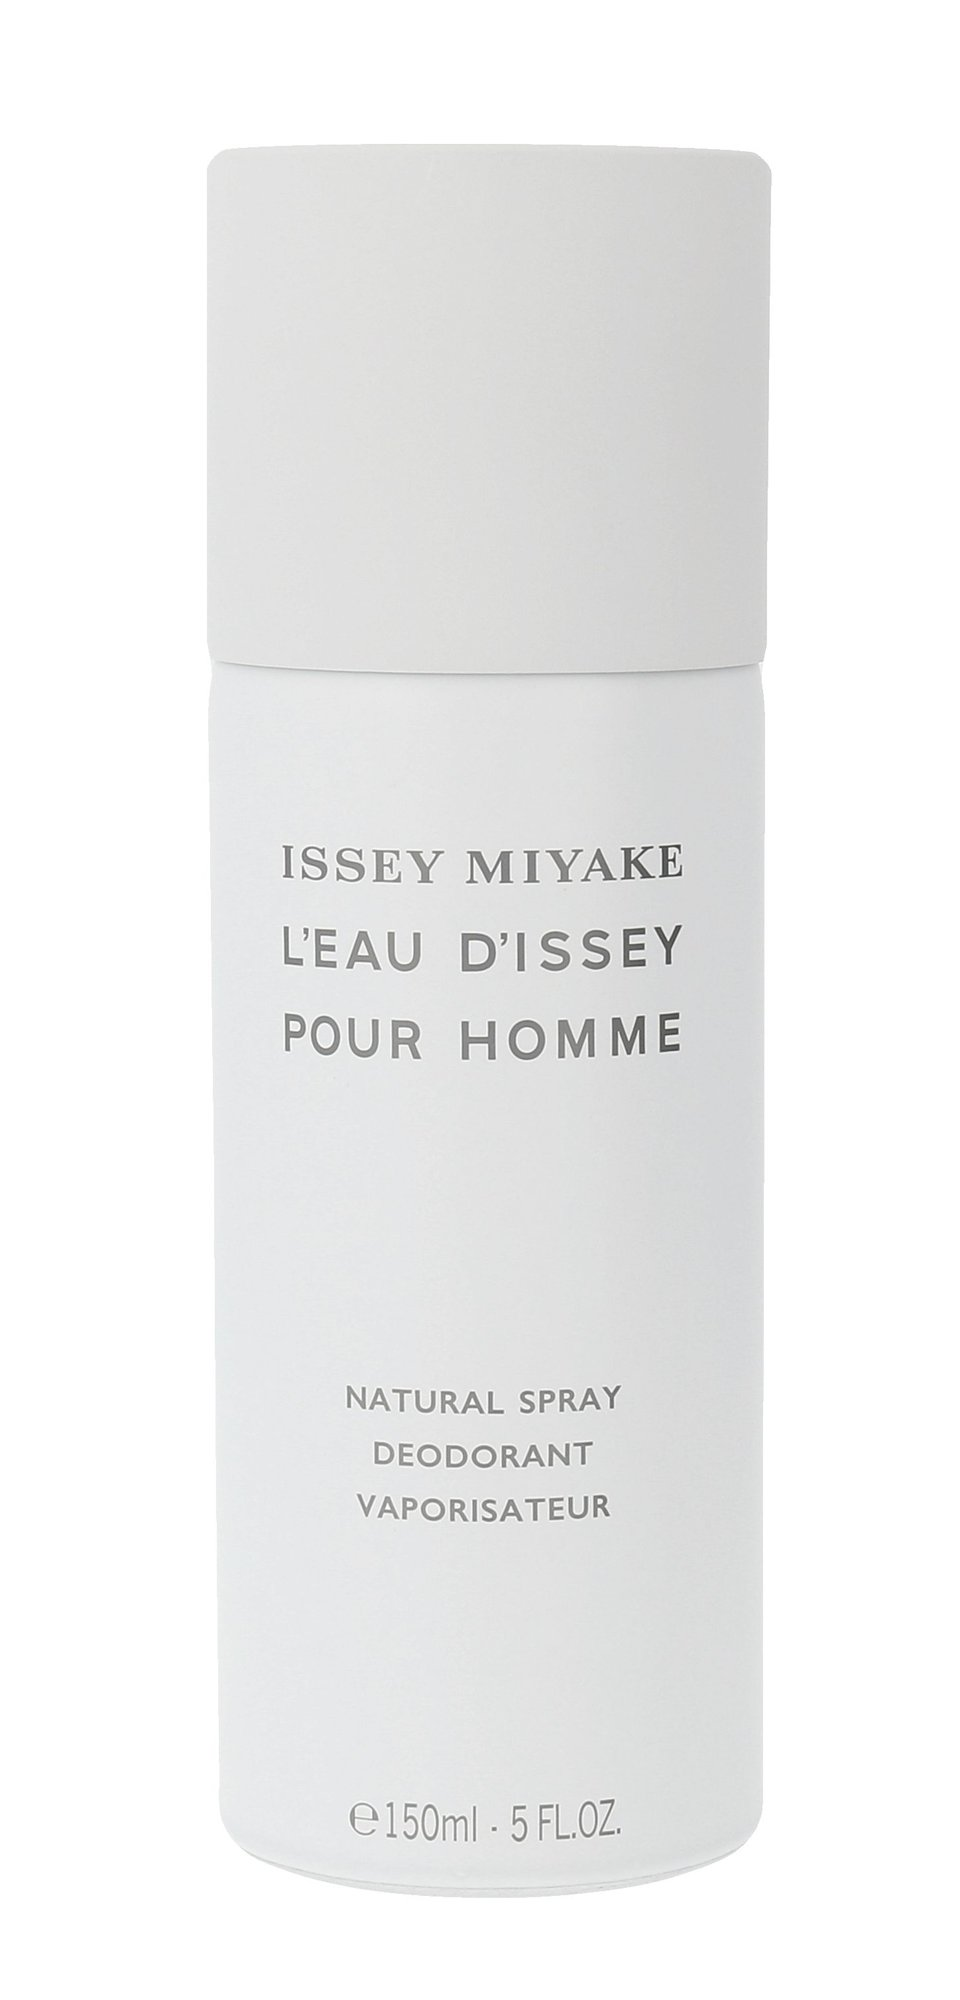 Issey Miyake L´Eau D´Issey Pour Homme Deodorant 150ml